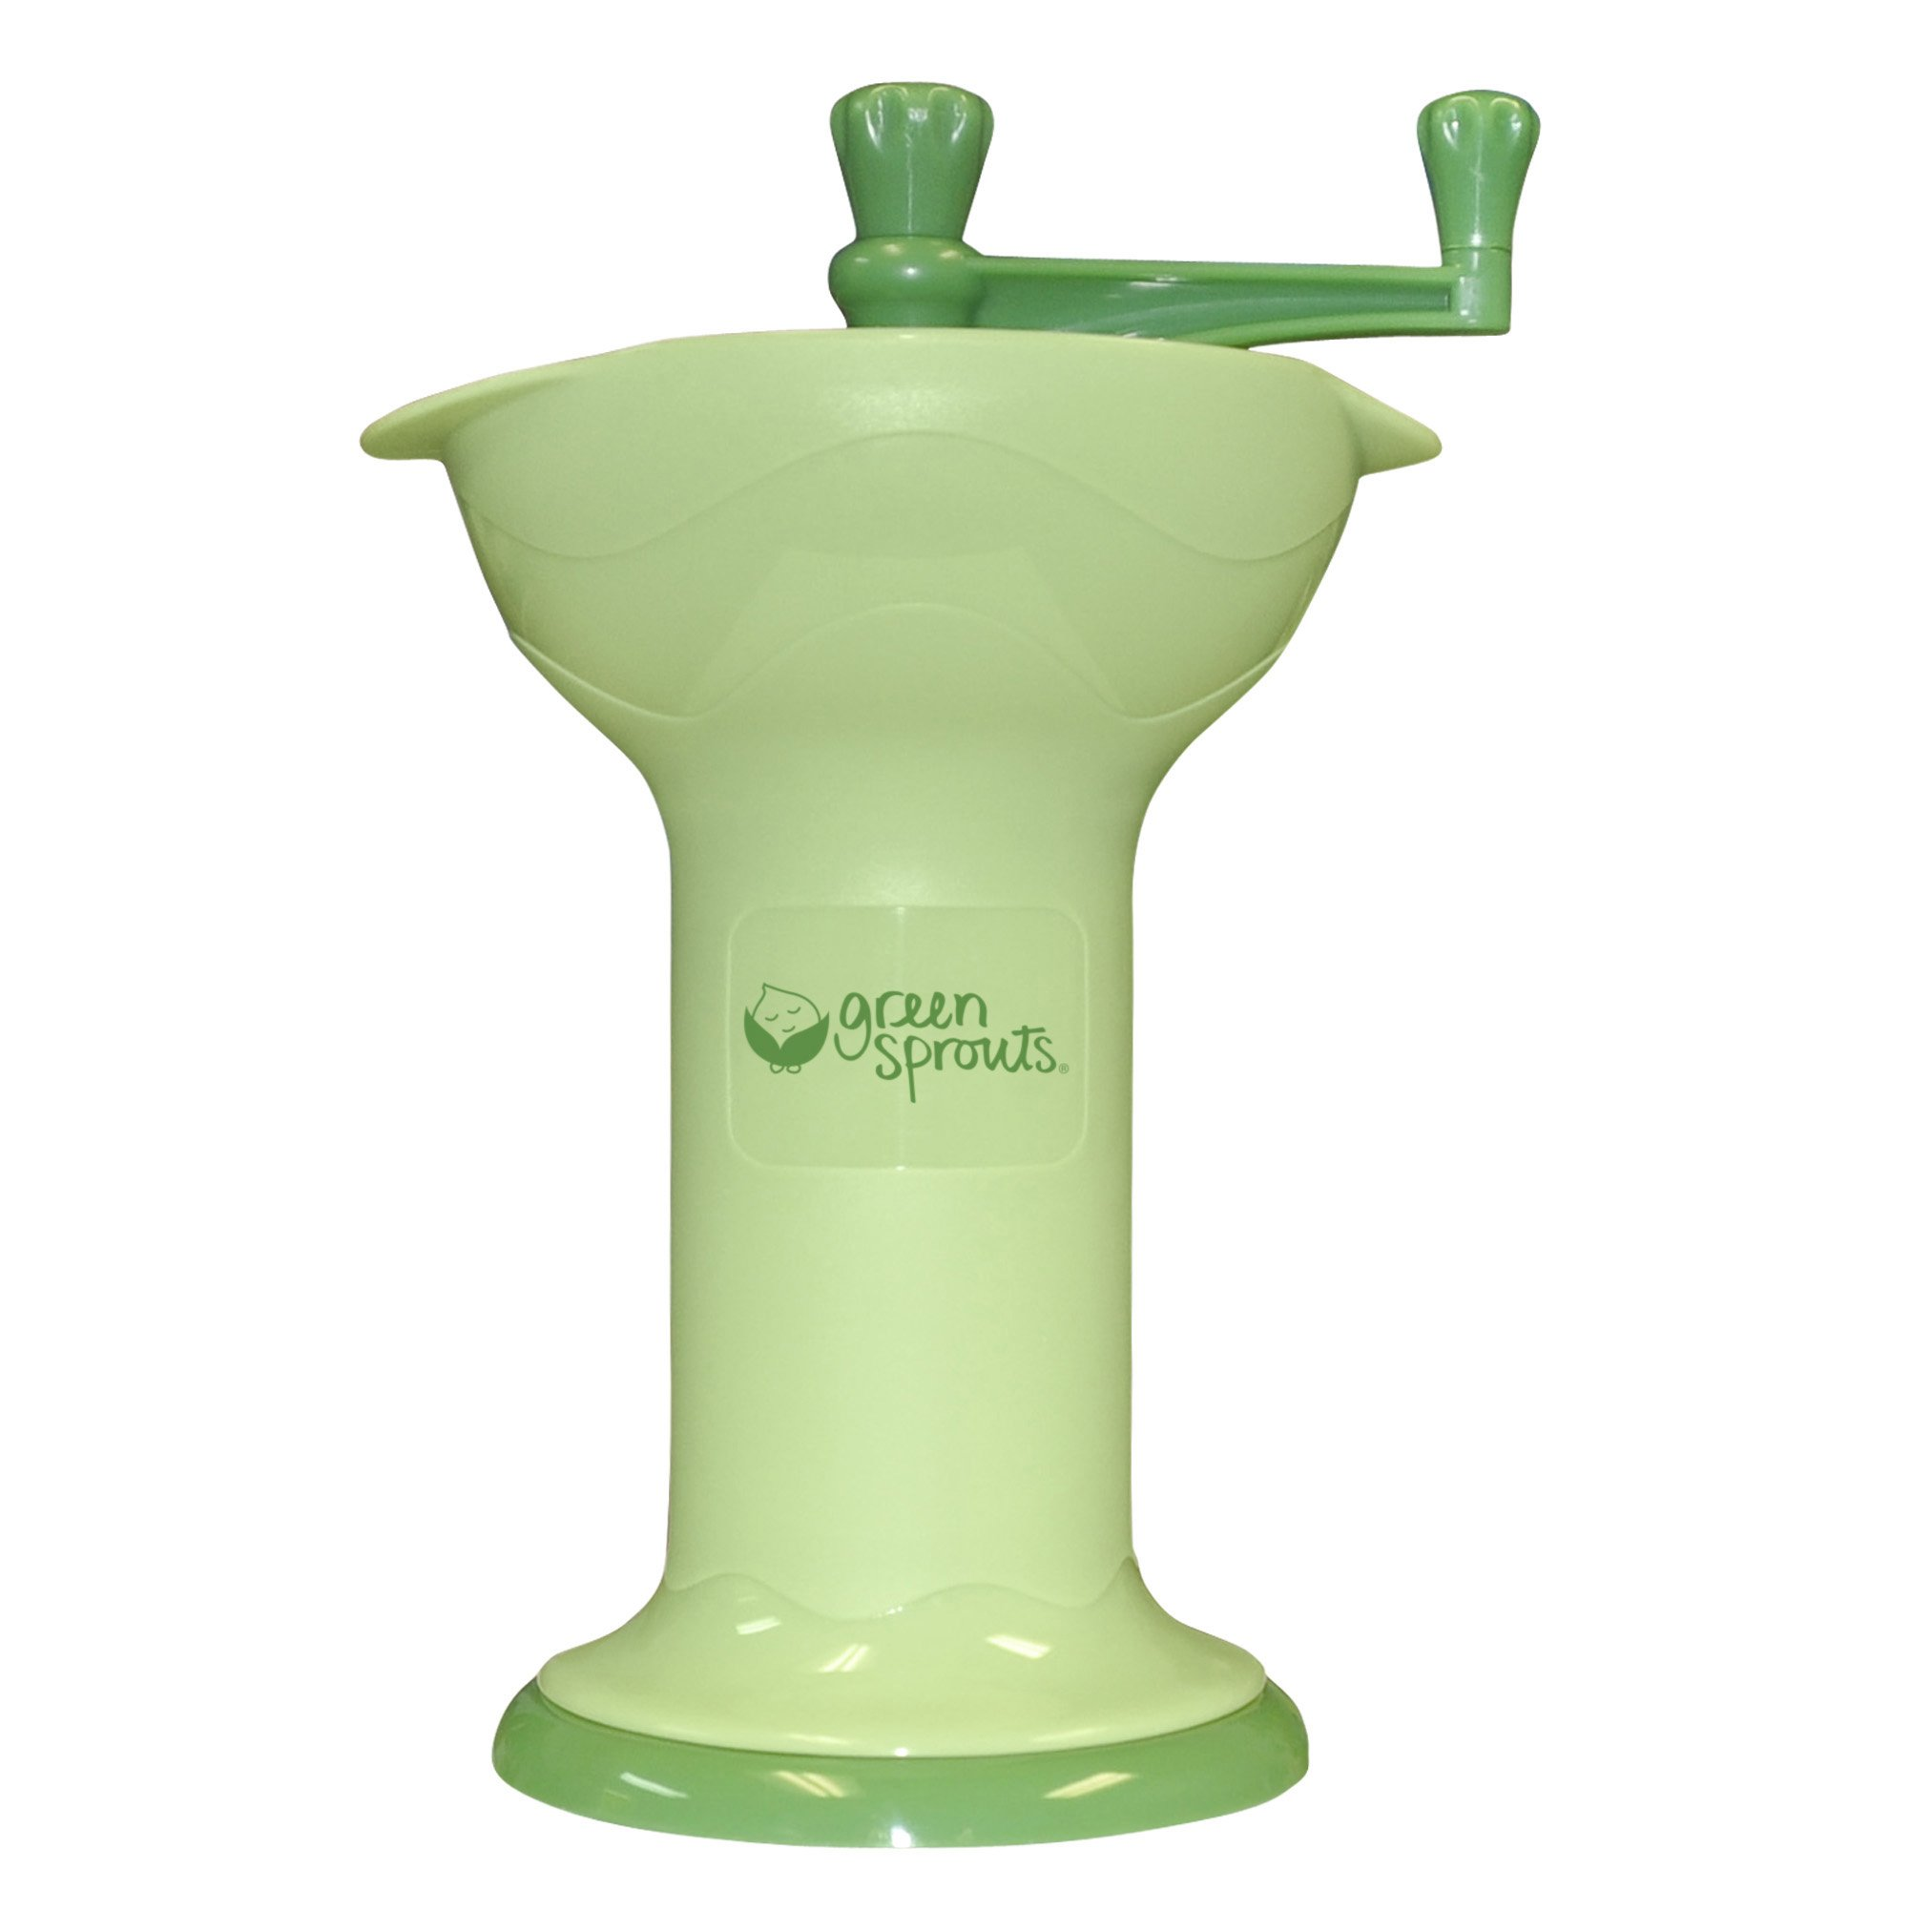 green sprouts Fresh Baby Food Mill | Easily purees food for baby | Seperates seeds & skins from puree, Compact size, No batteries or electricity needed, Dishwasher safe by green sprouts